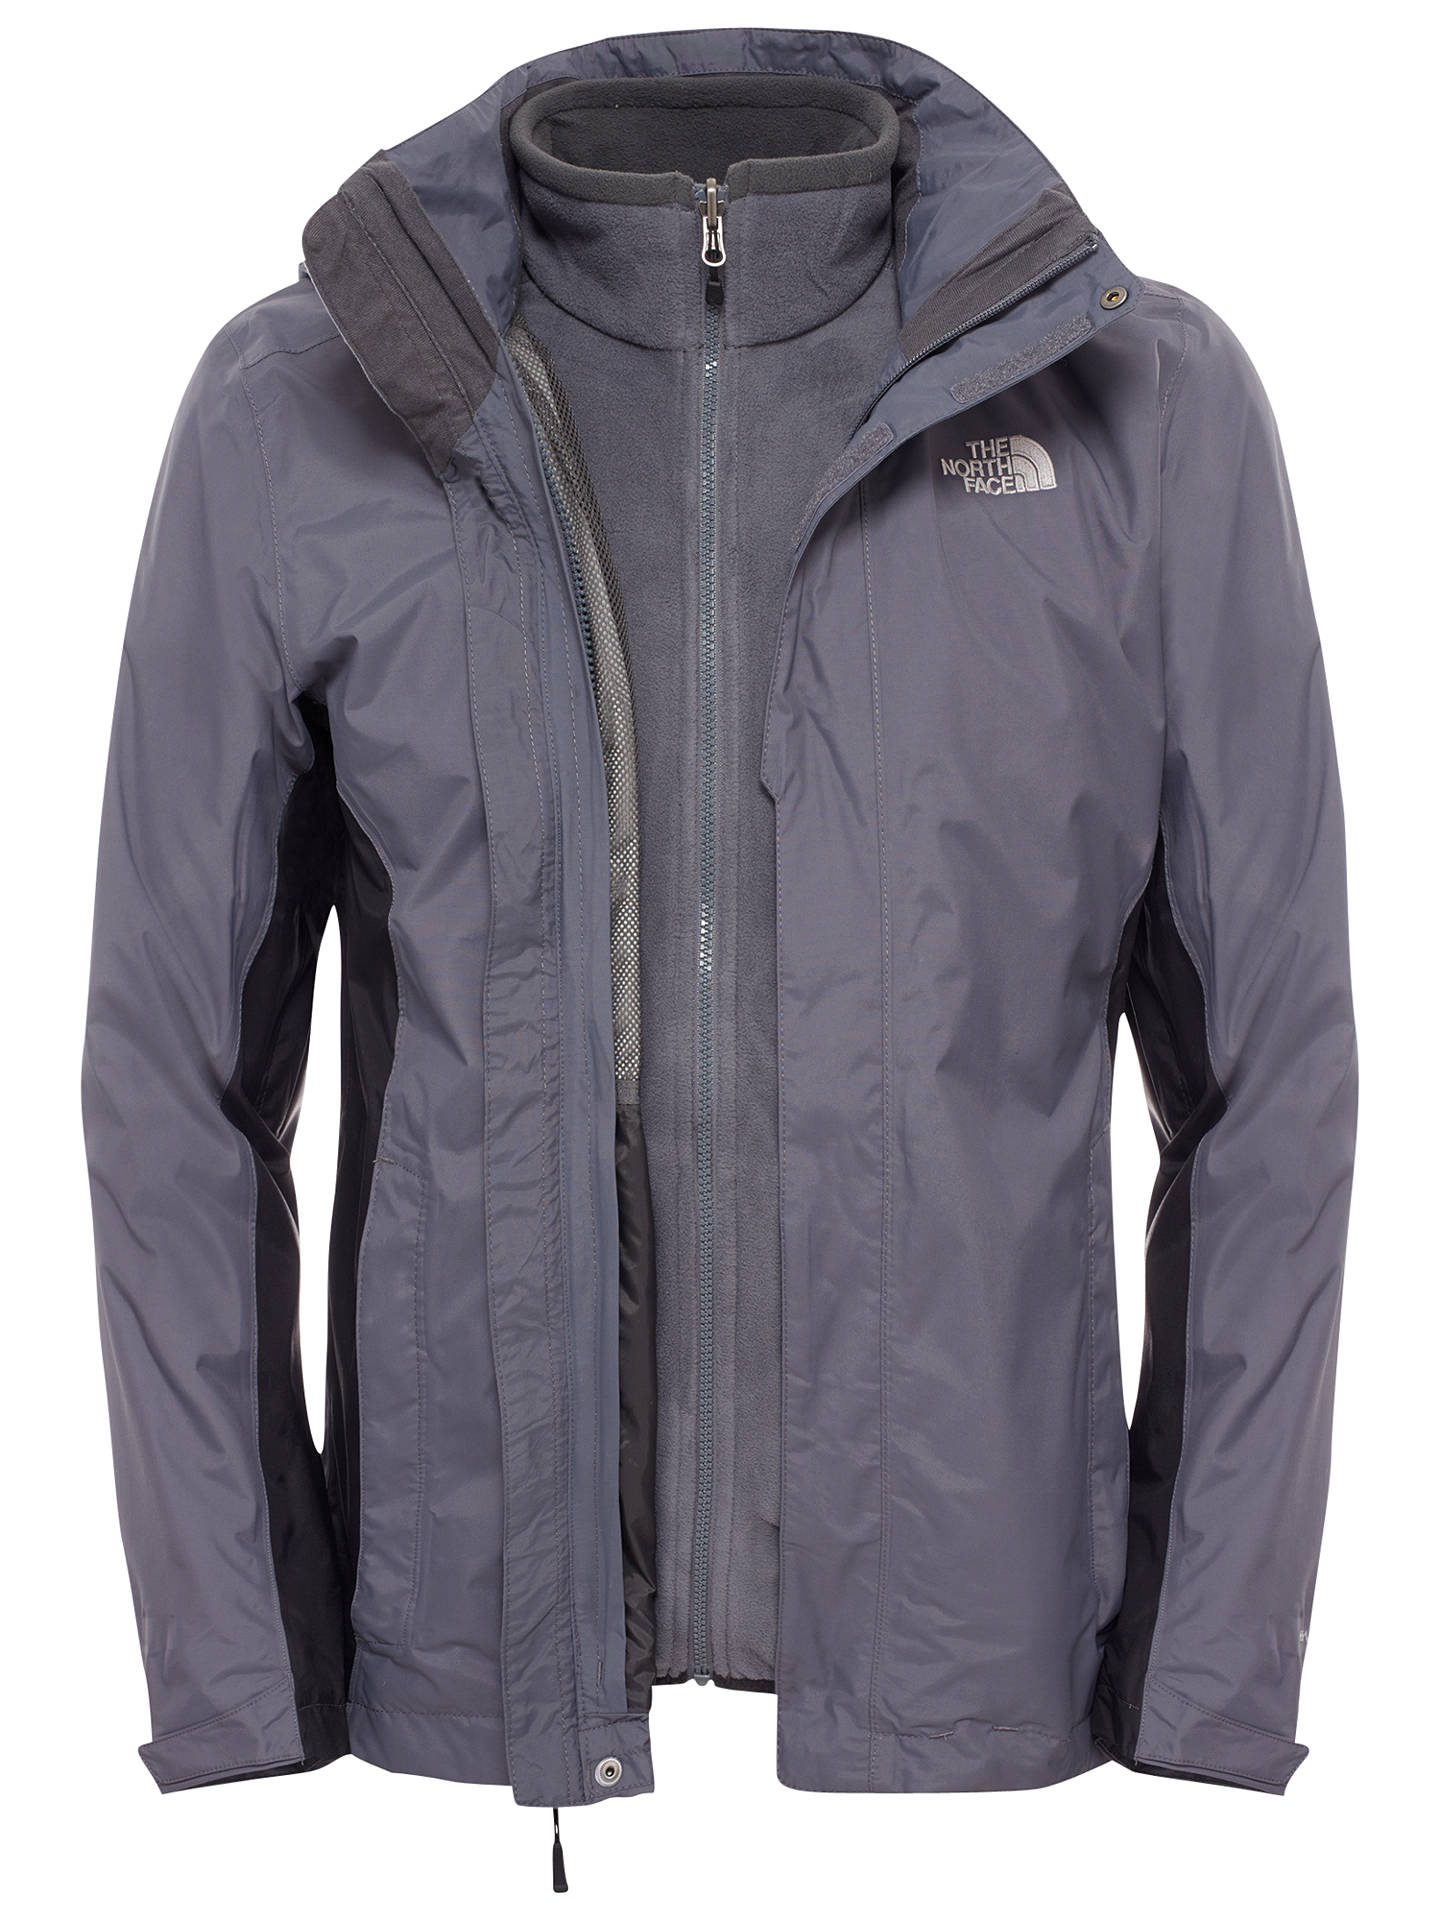 b97fa40f5740 Buy The North Face Evolution II Triclimate 3-in-1 Men s Jacket